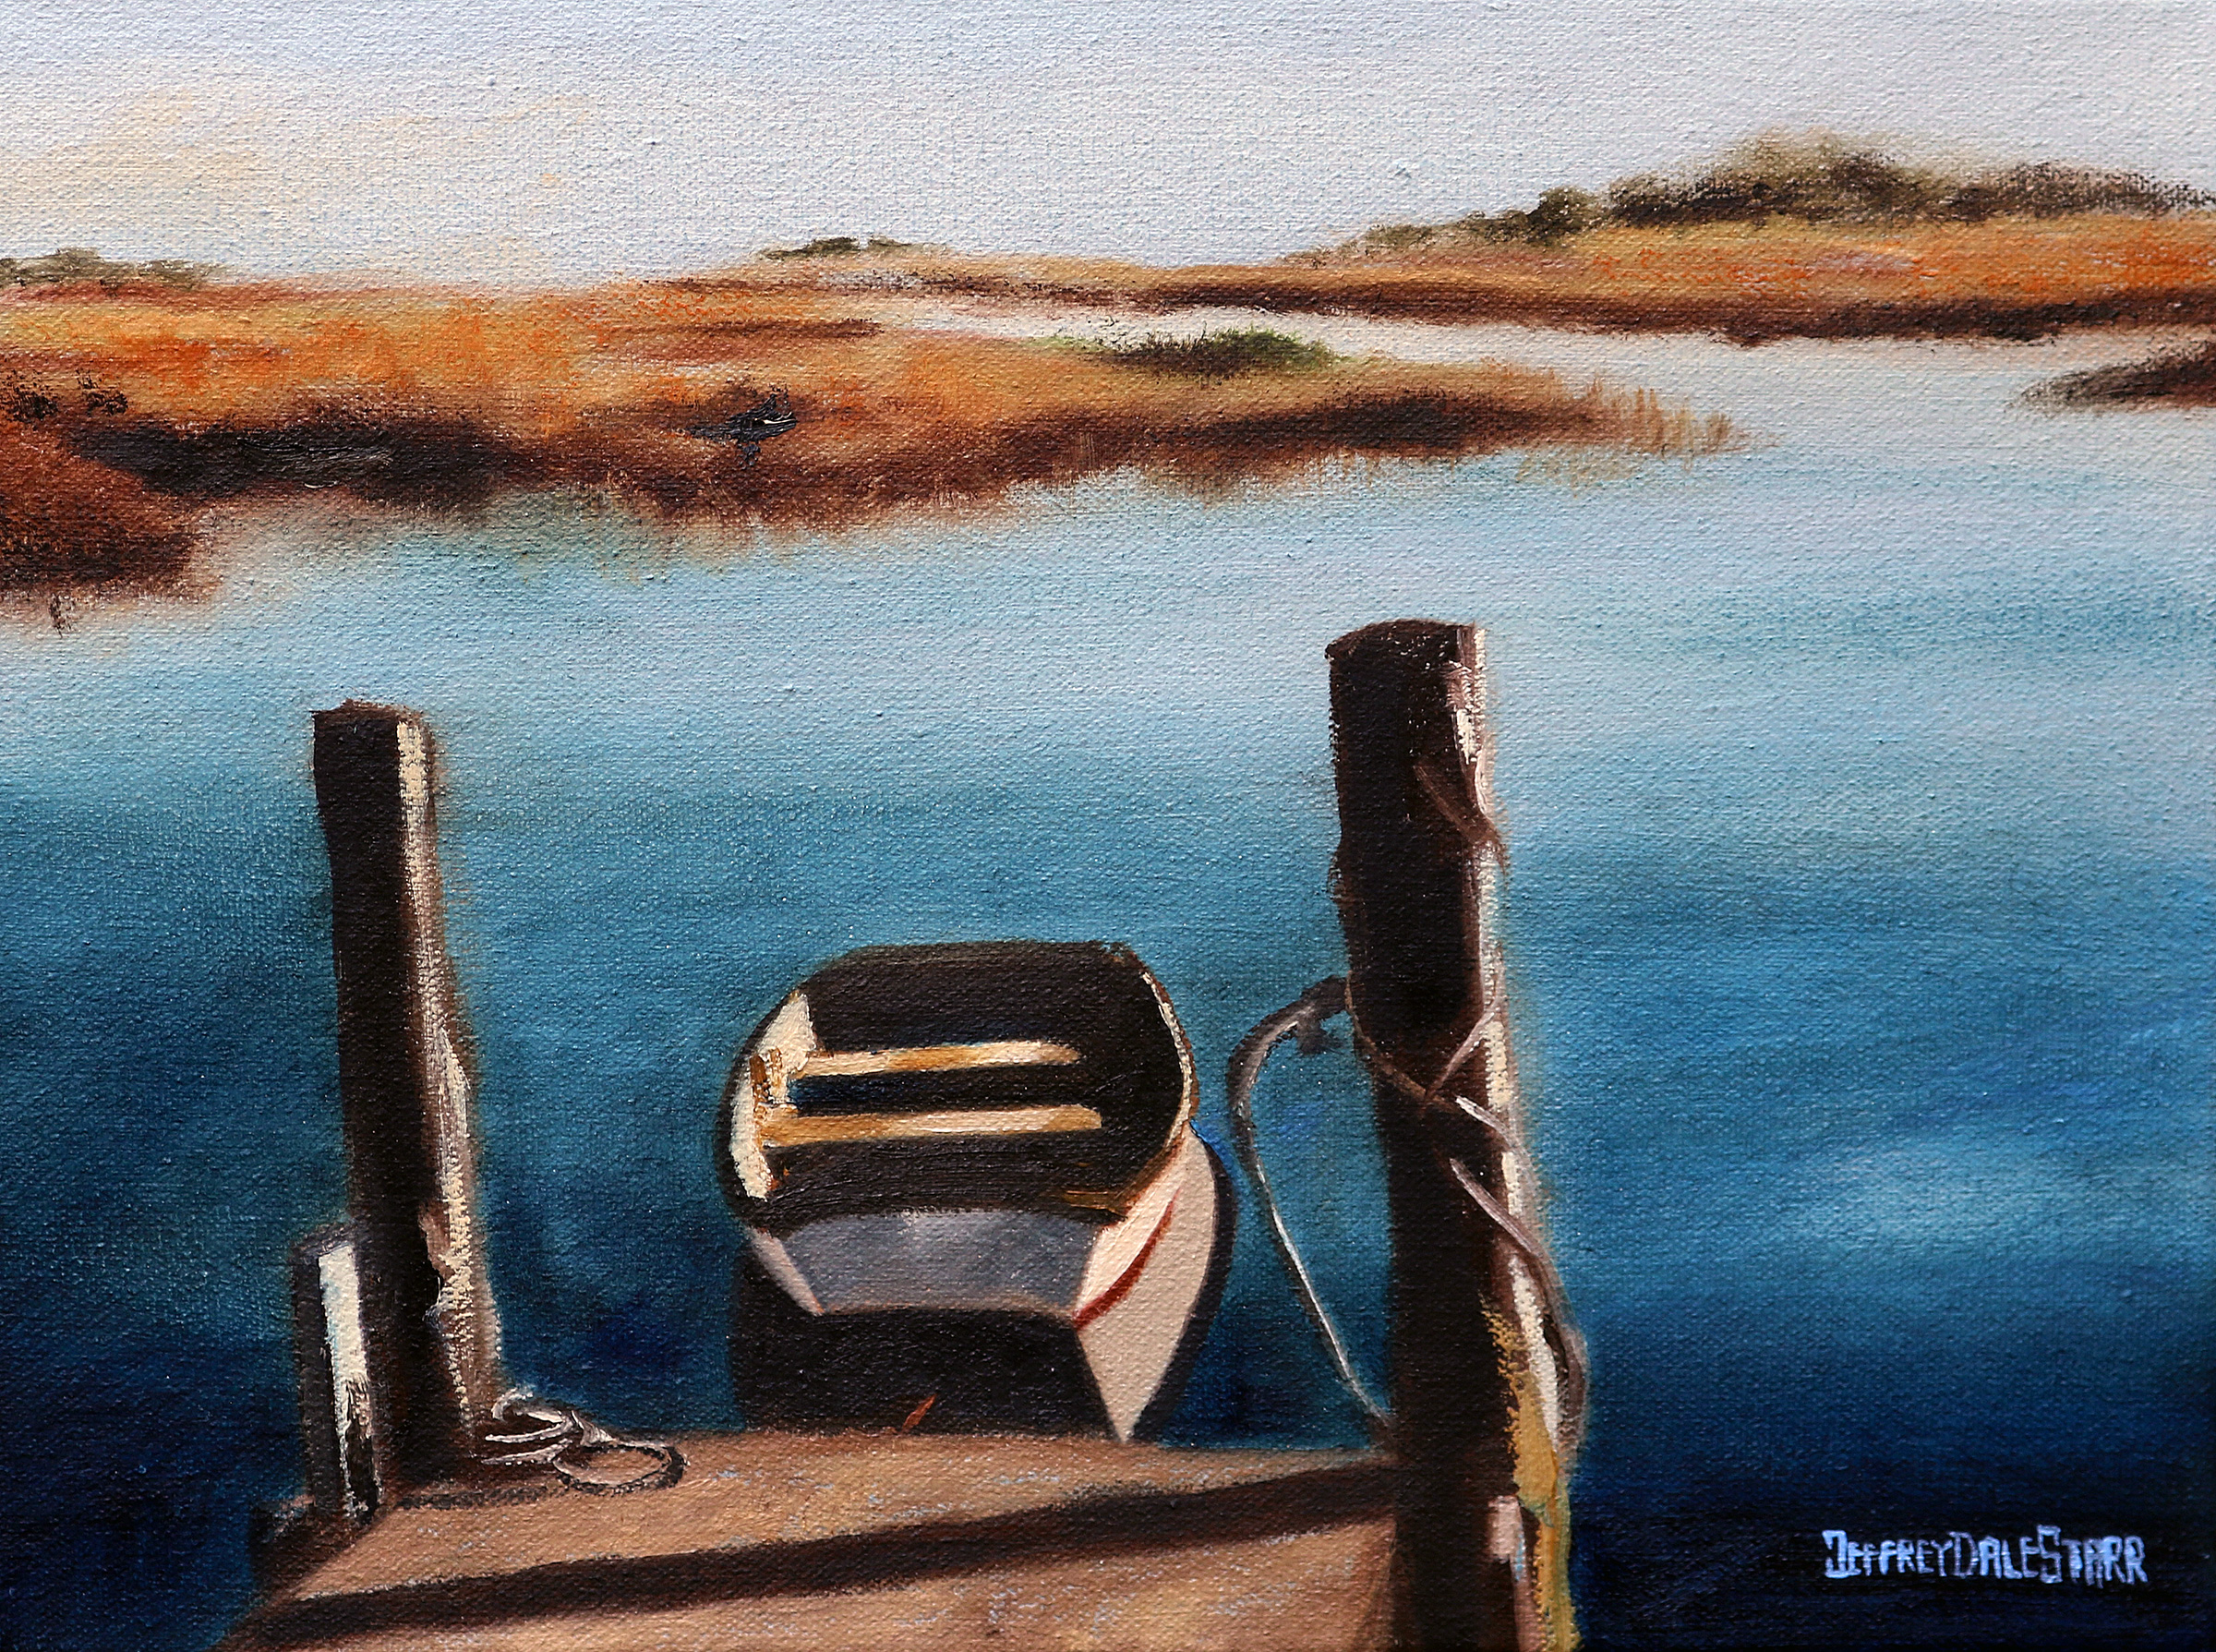 The Lonely Little Boat by Jeffrey Dale Starr